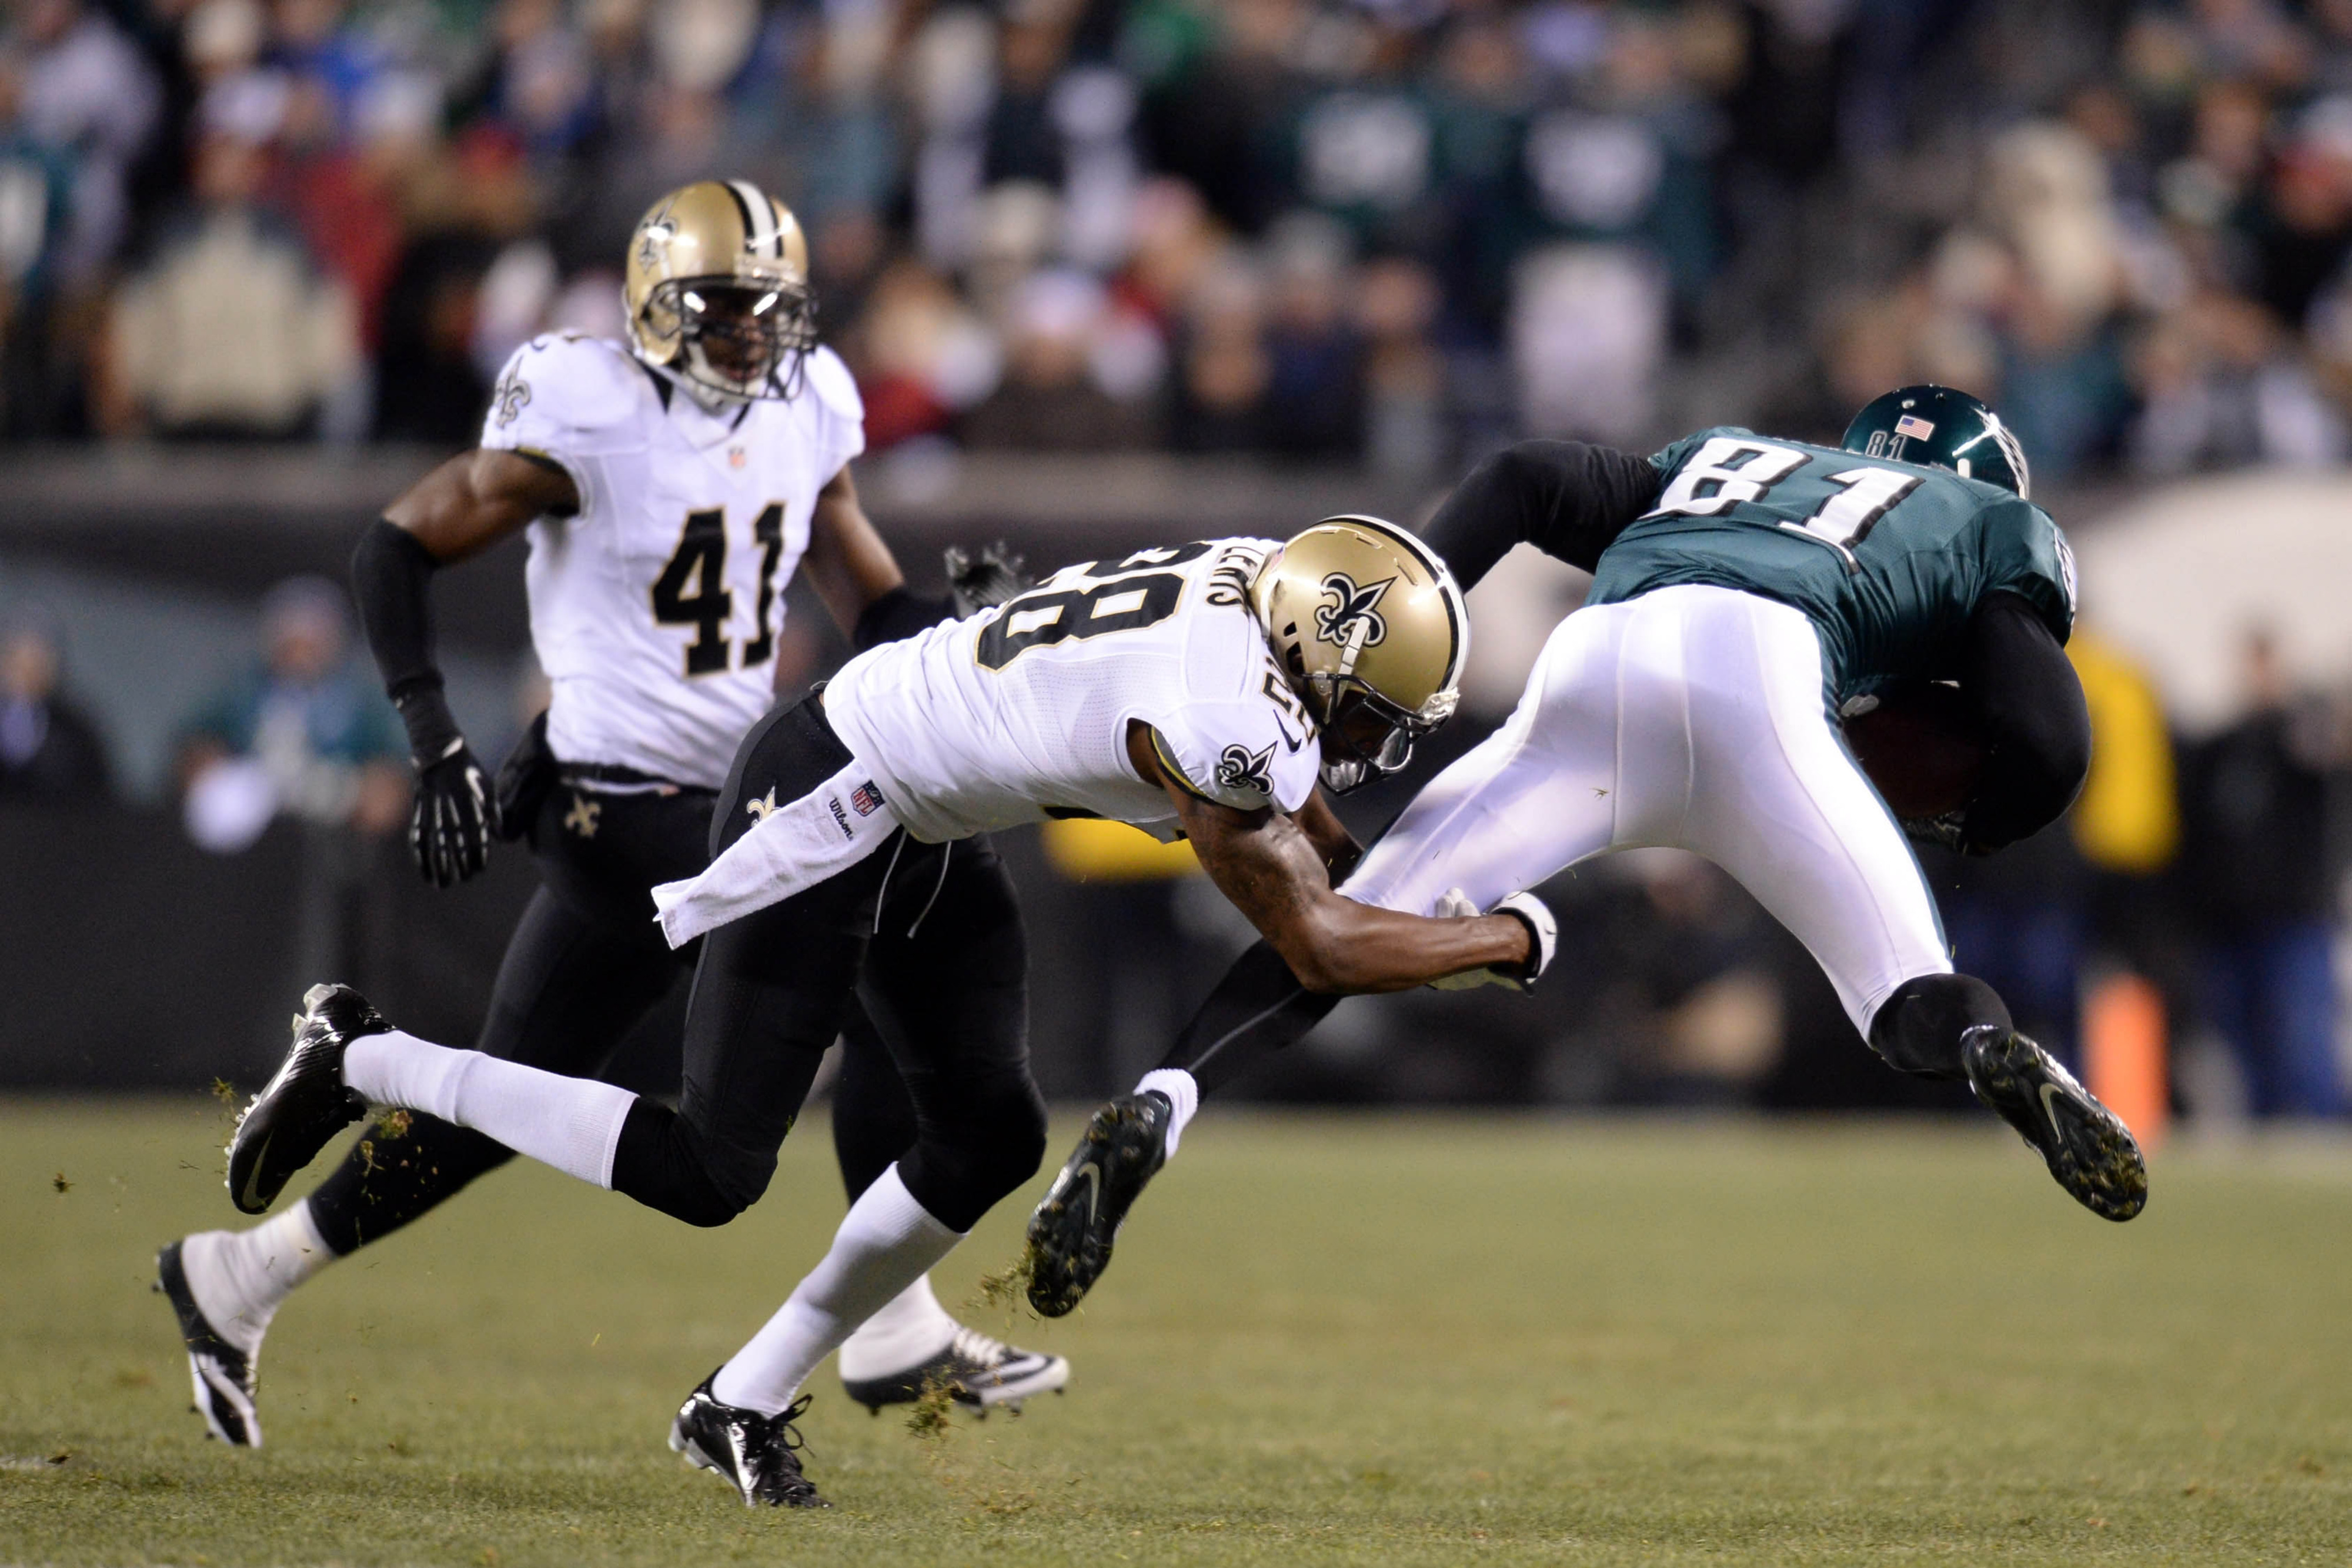 Saints vs. Eagles, 2014 NFL injury report: Keenan Lewis, Brent Celek leave game